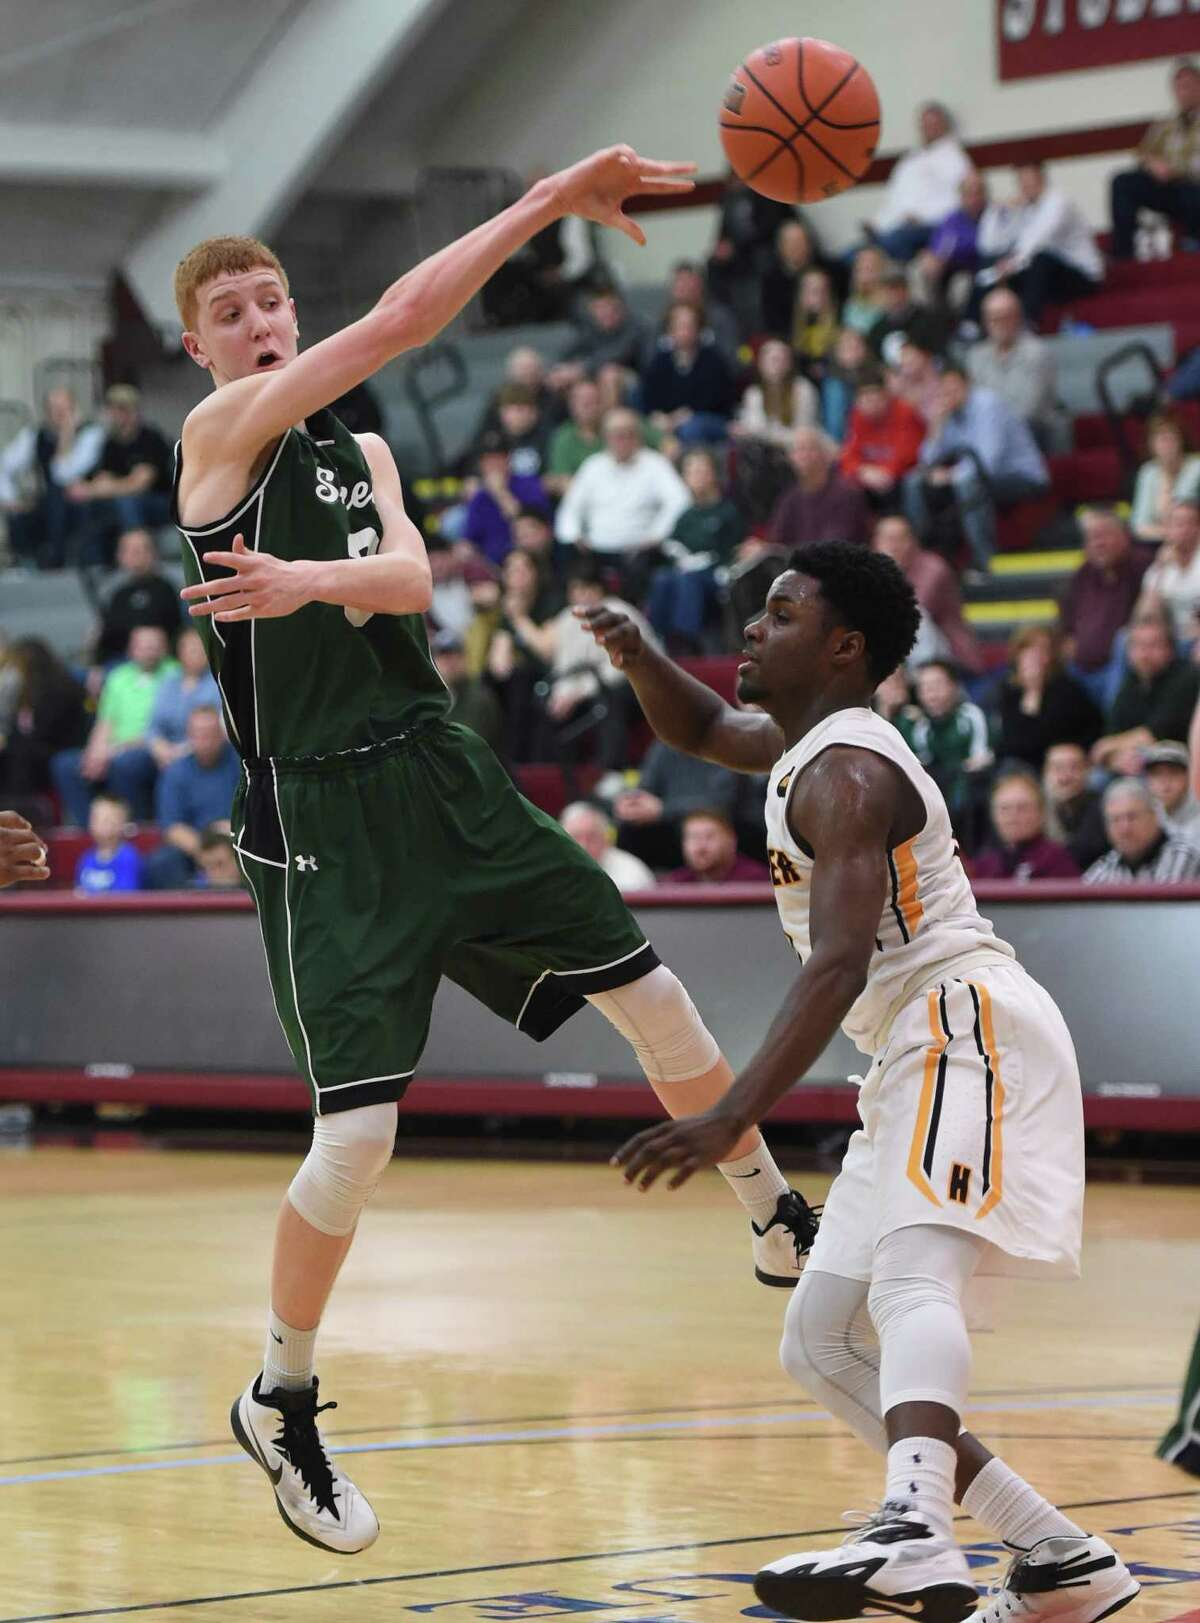 Shenendehowa's Kevin Huerter (3) passes the ball under pressure versus Henninger in the New York State Class AA Regional final at Colgate University, Hamilton, N.Y., Saturday March 13, 2015. (Scott Schild / Special to the Times Union) ORG XMIT: 94825